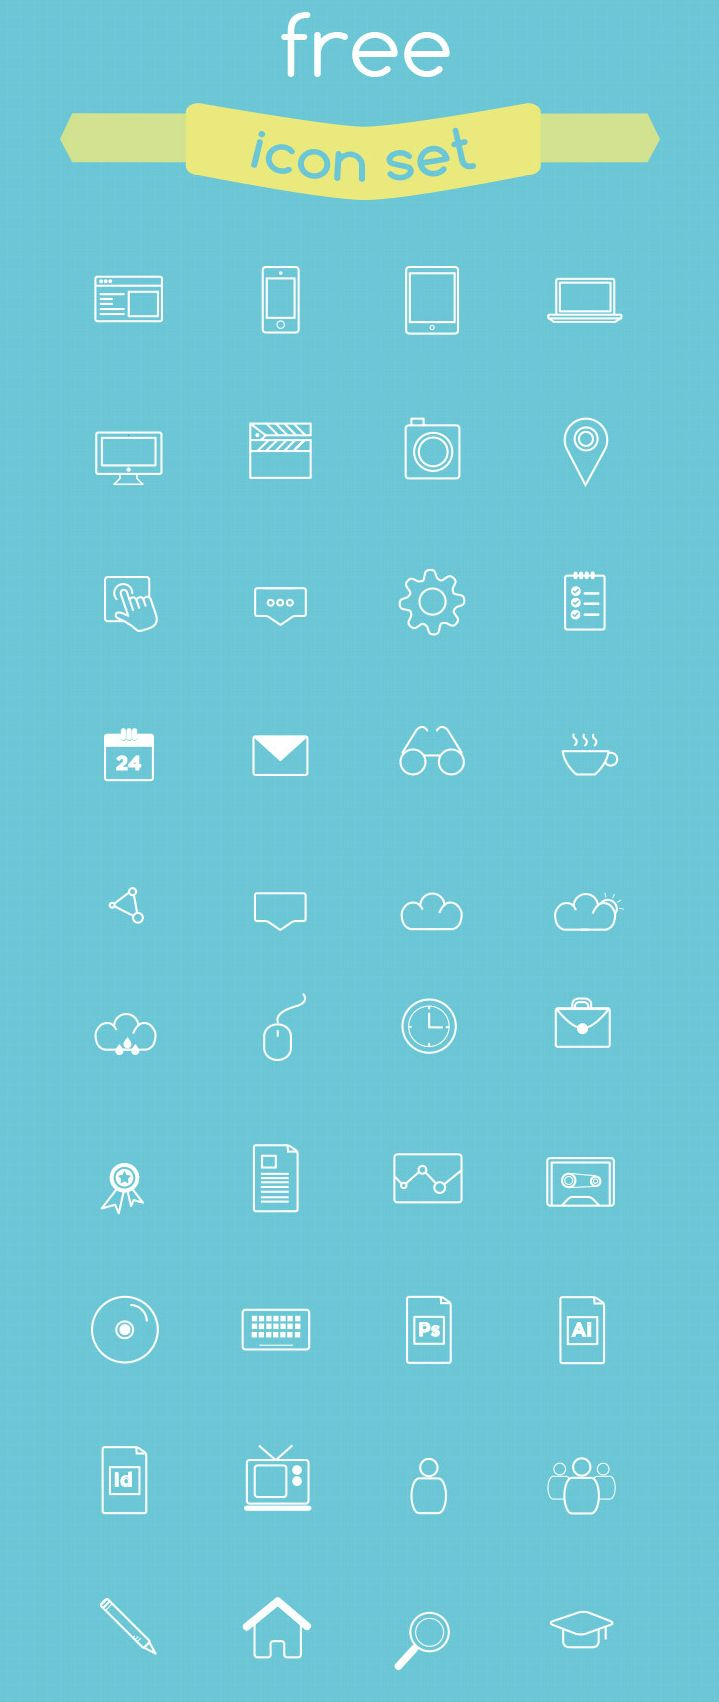 PAGE - #Free #Icon Set, #Graphic #Design, #Resource, #Vector